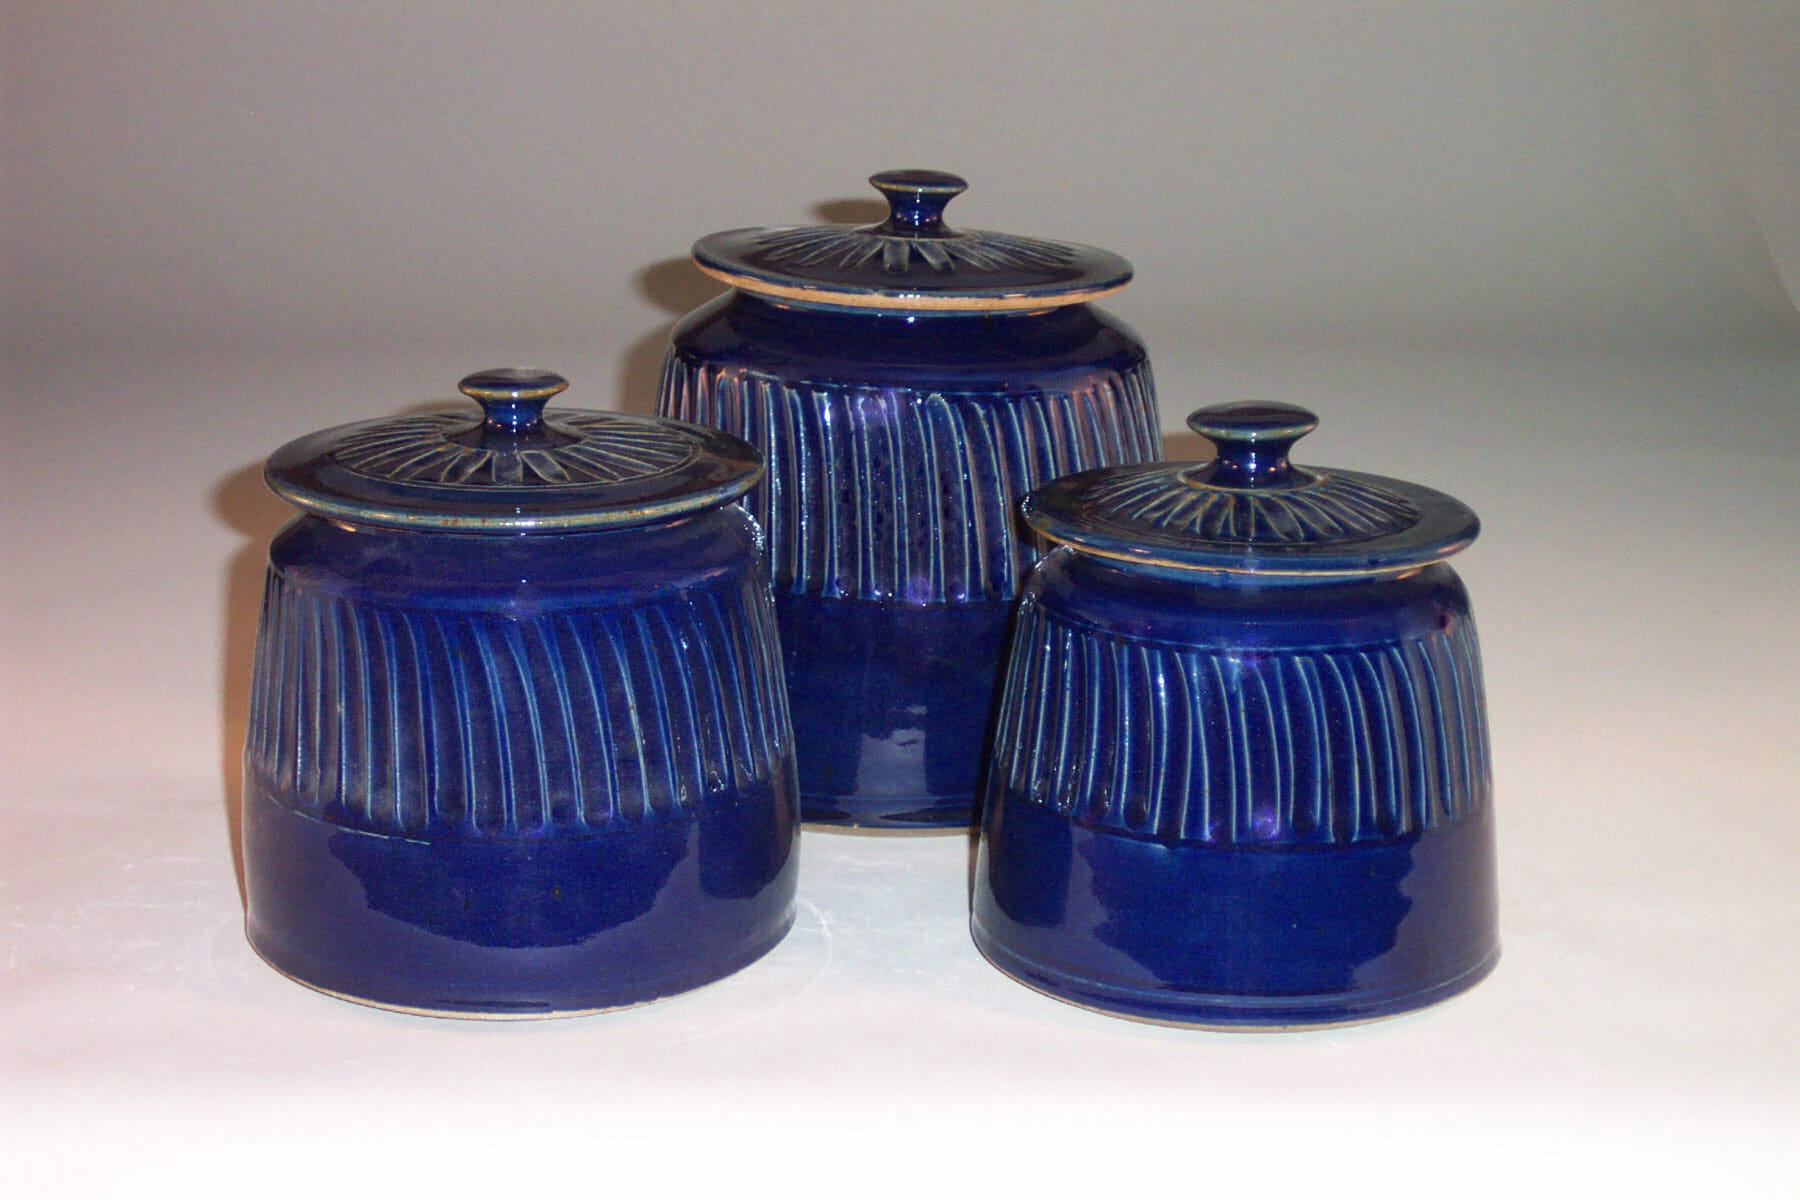 Cannister 3-pc Set with Lids Design 2 in Dark Blue Glaze